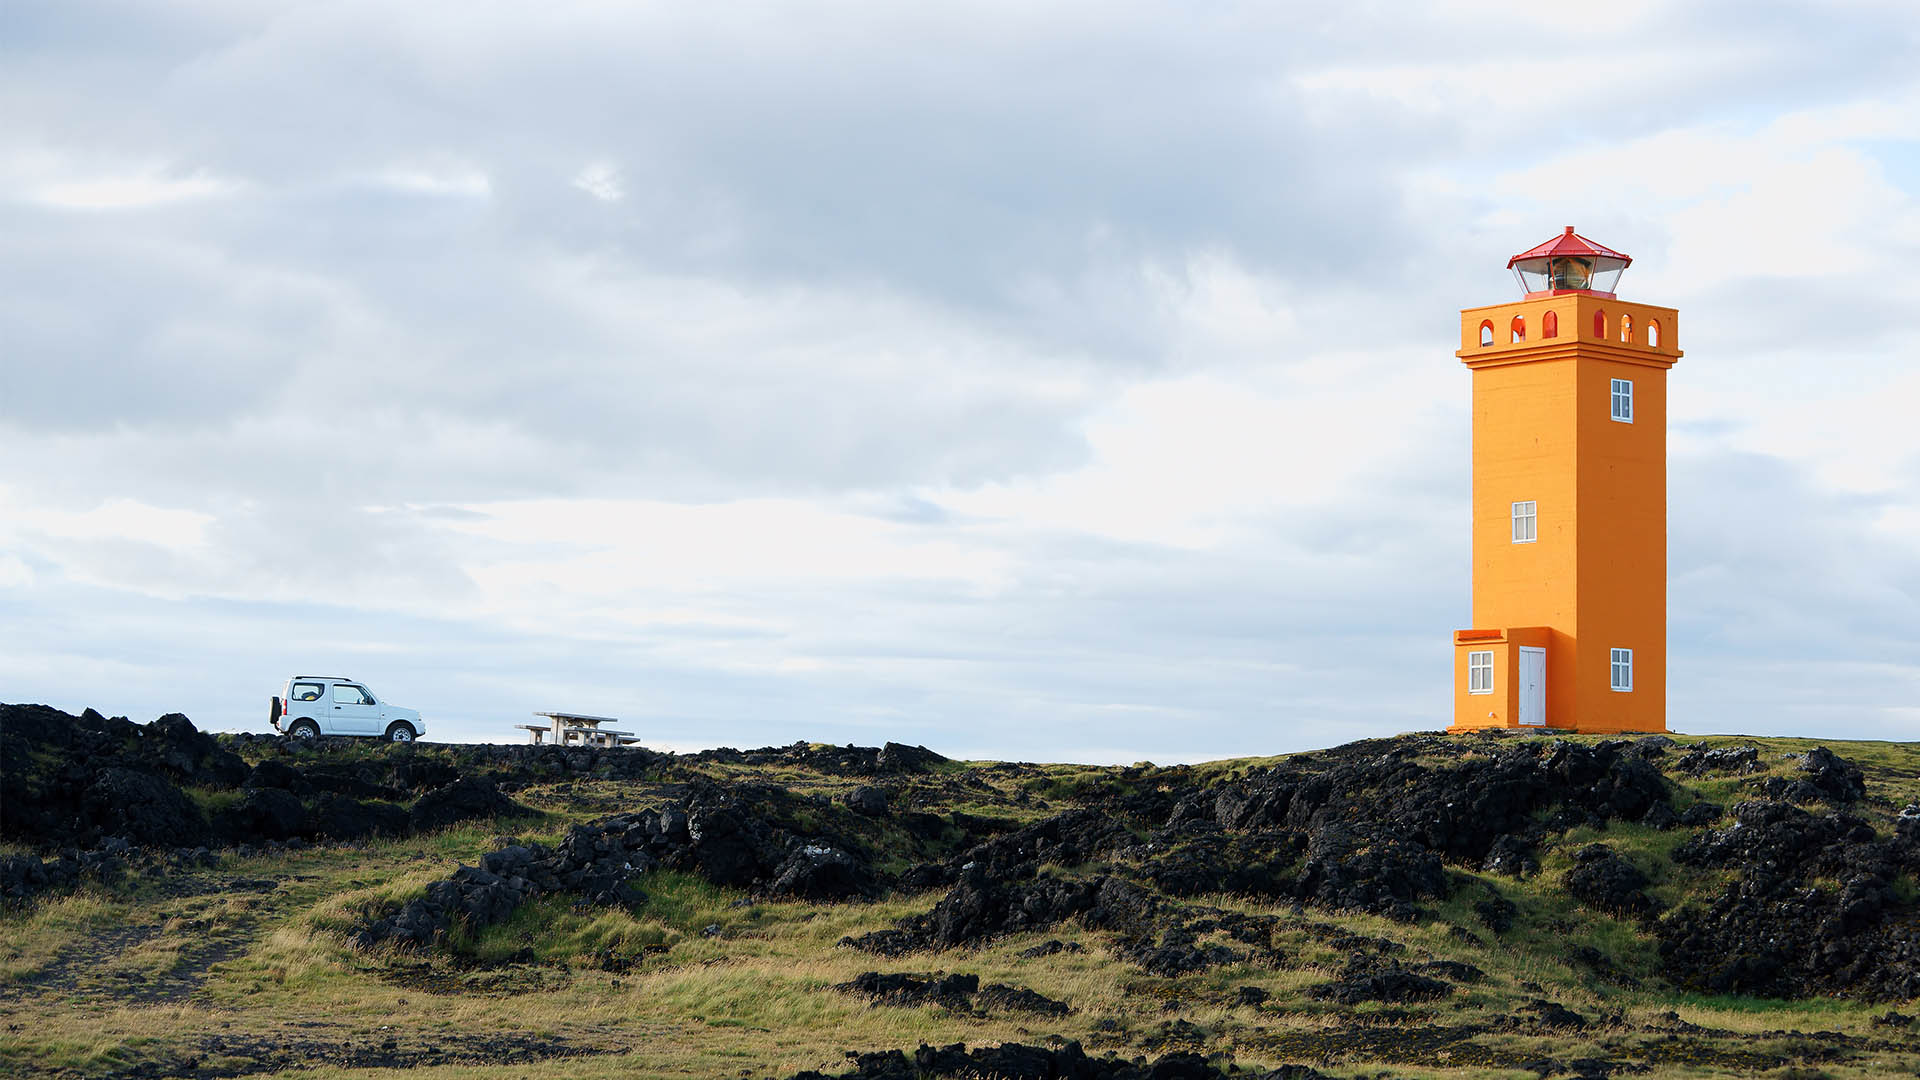 Iceland inspiration: 5 reasons to visit this Nordic island in summer